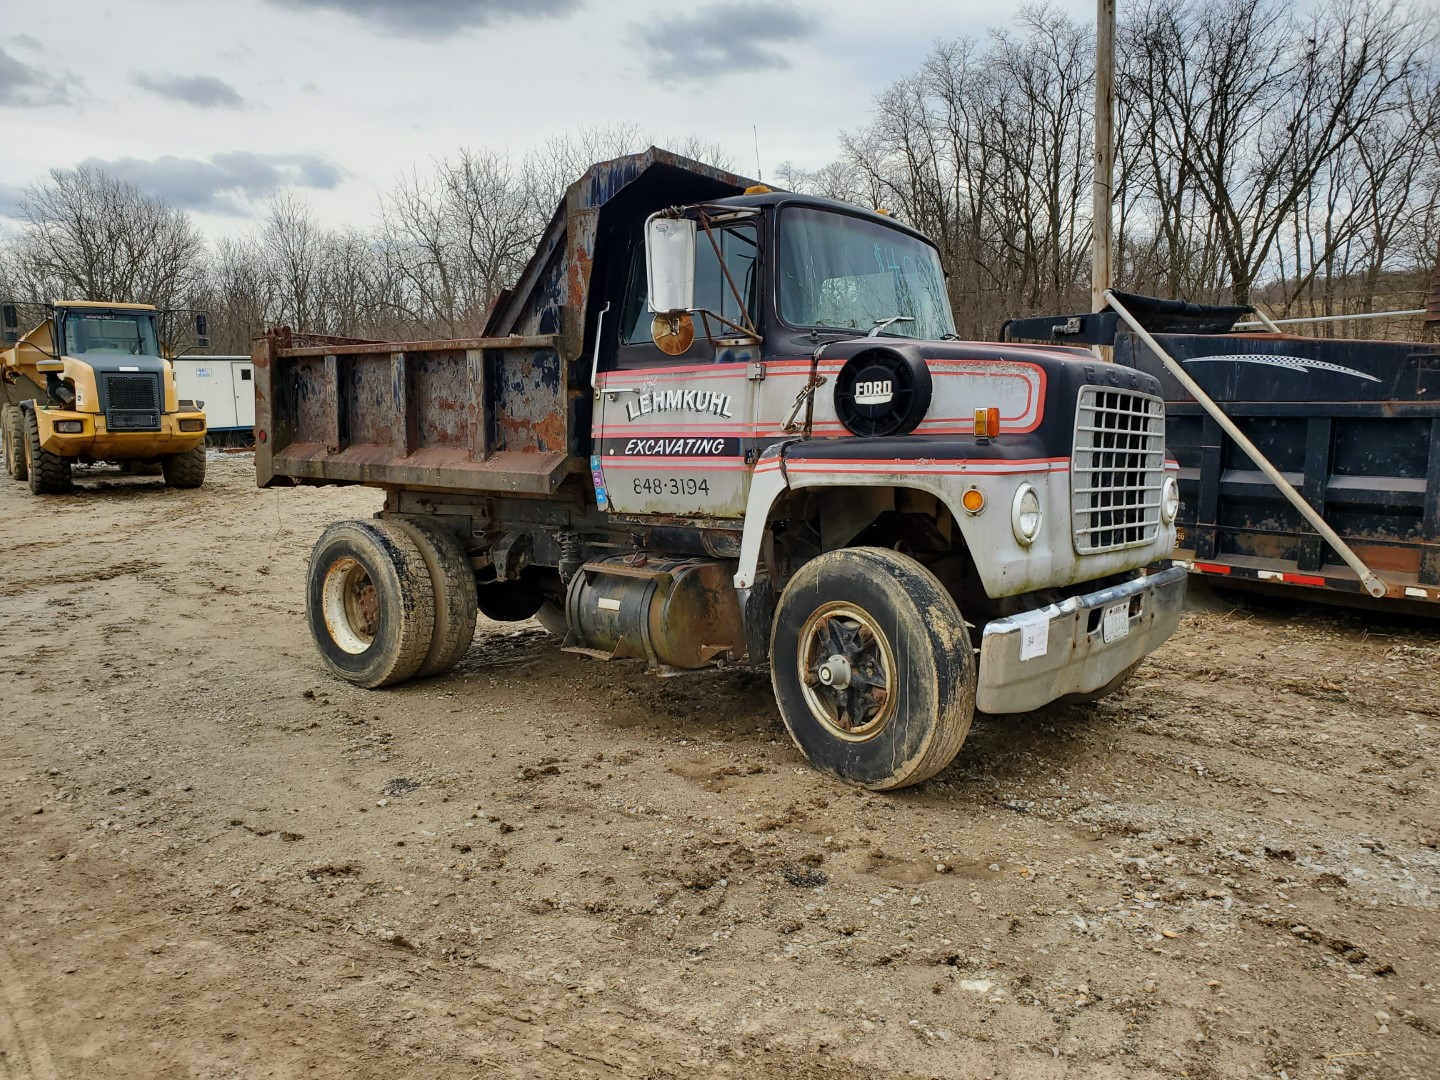 1976 Ford 8000 Single Axle Dump Truck, 9 ft Dump Bed, Manual Transmission, 2-Speed Axle, 86,500 Mile - Image 4 of 6